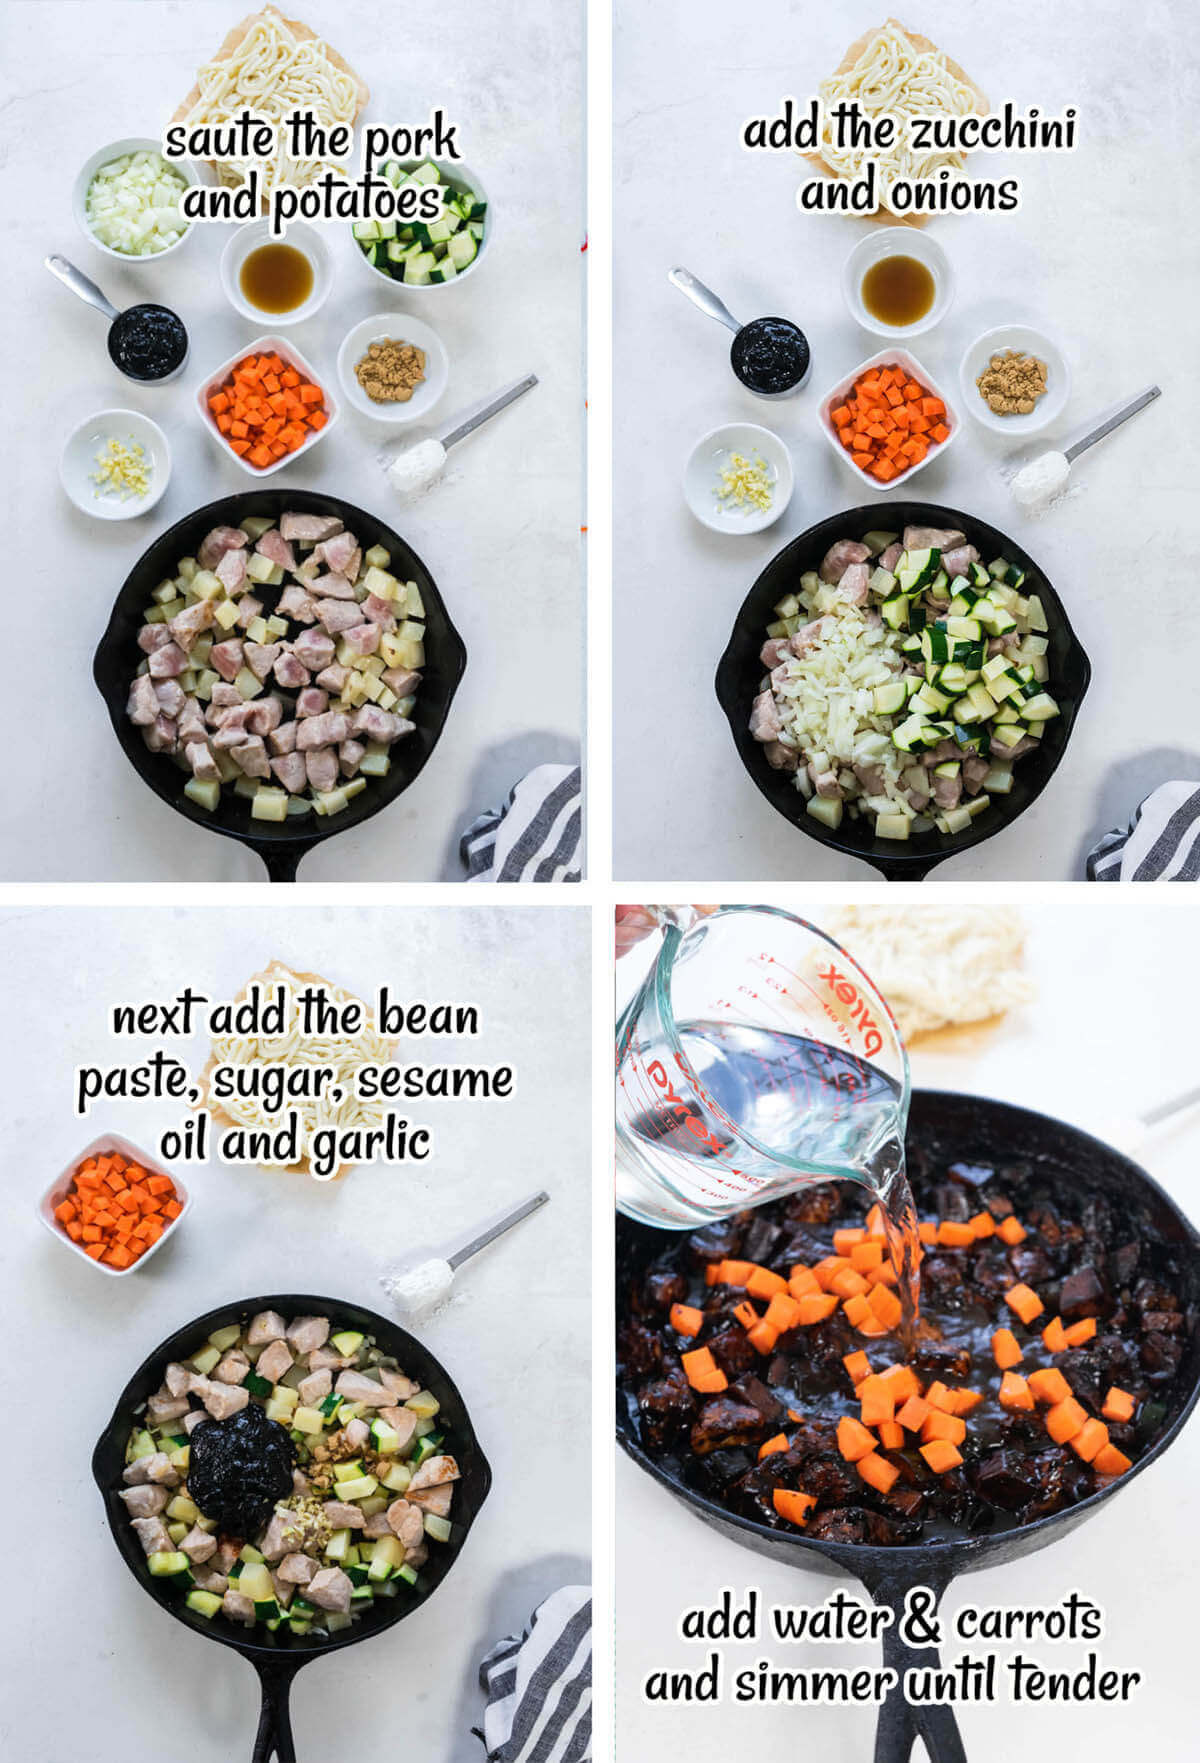 Step by step instructions showing how to make Jjajangmyeon.